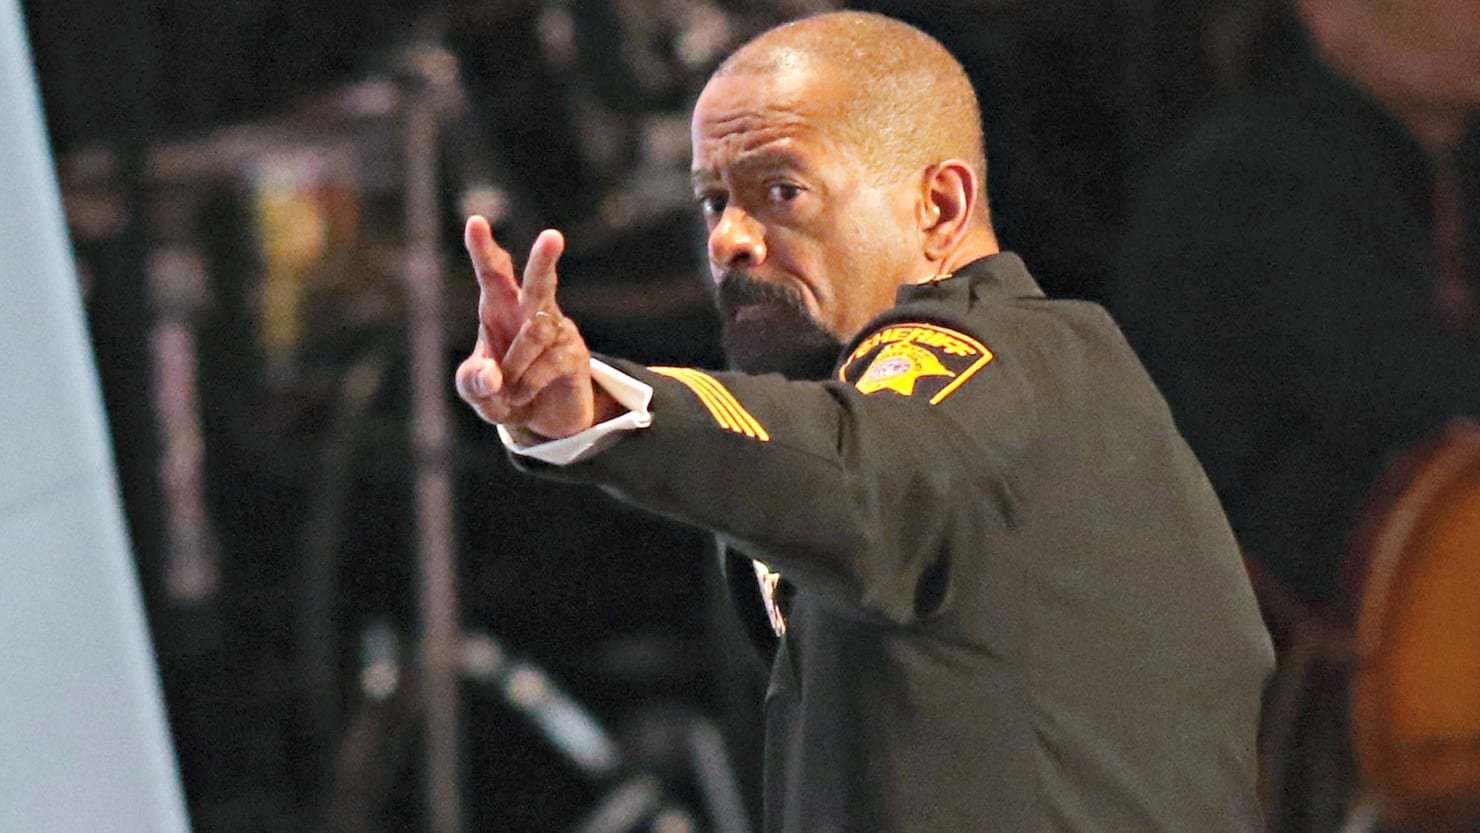 sheriff david clarke resigns